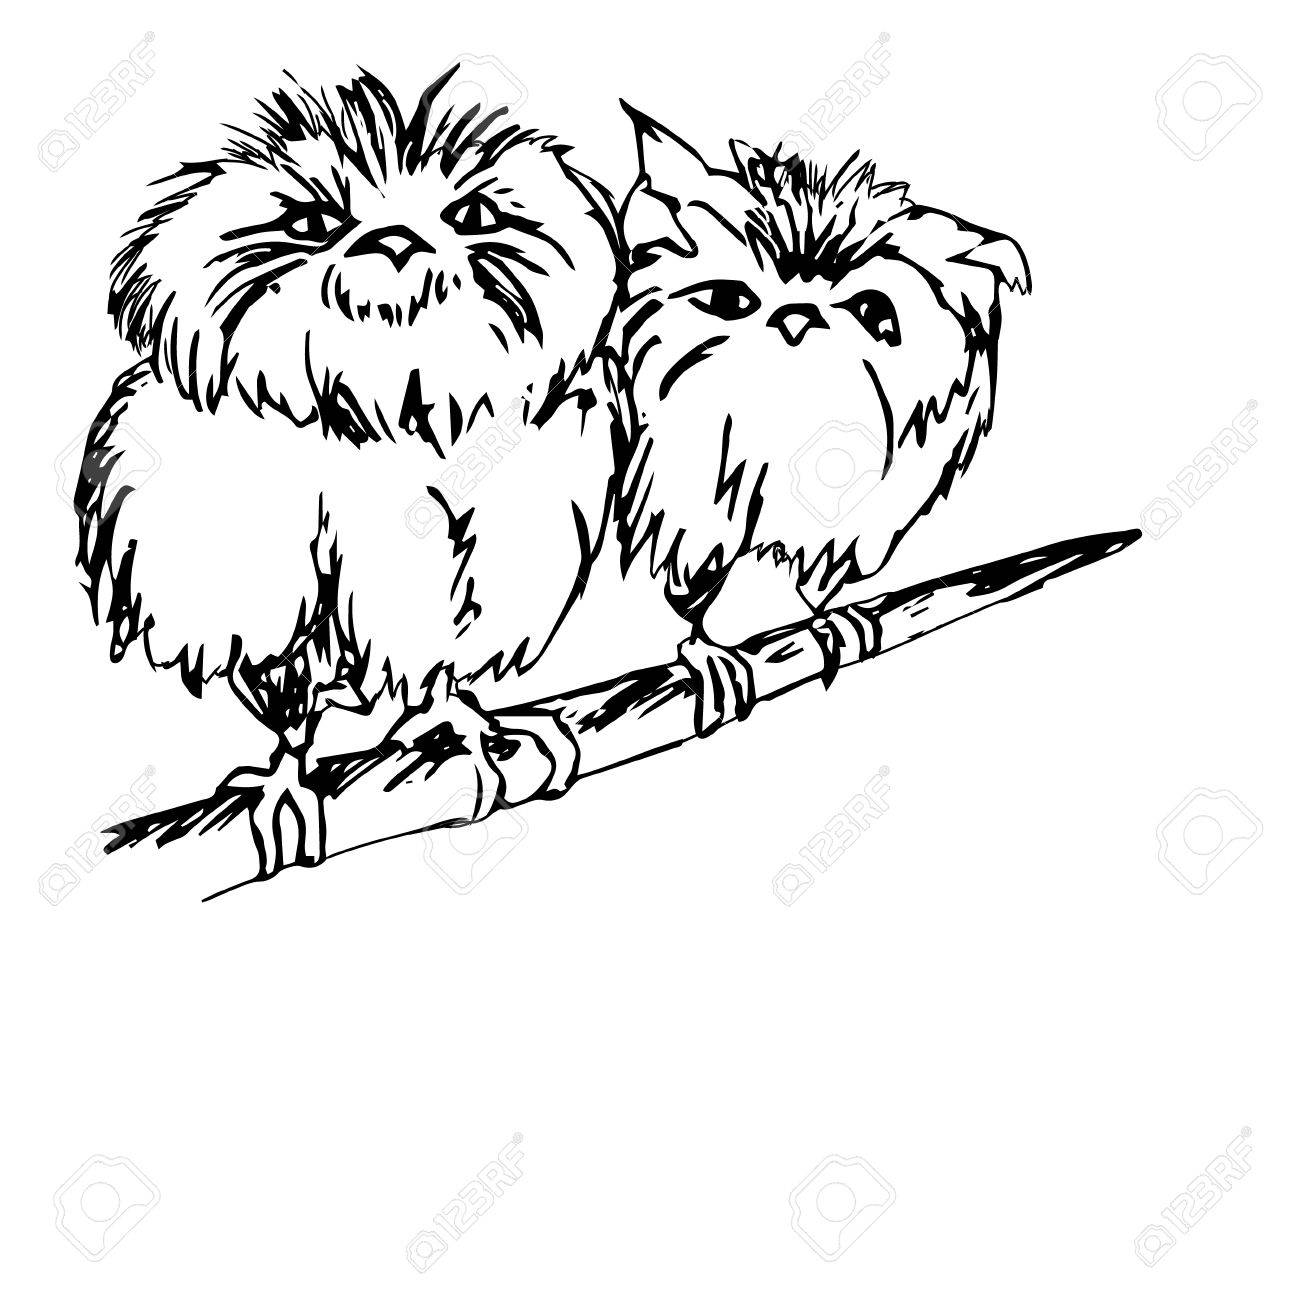 1300x1300 Graphic Image Of An Owl, Two Birds. Two Chicks Sitting On A Branch